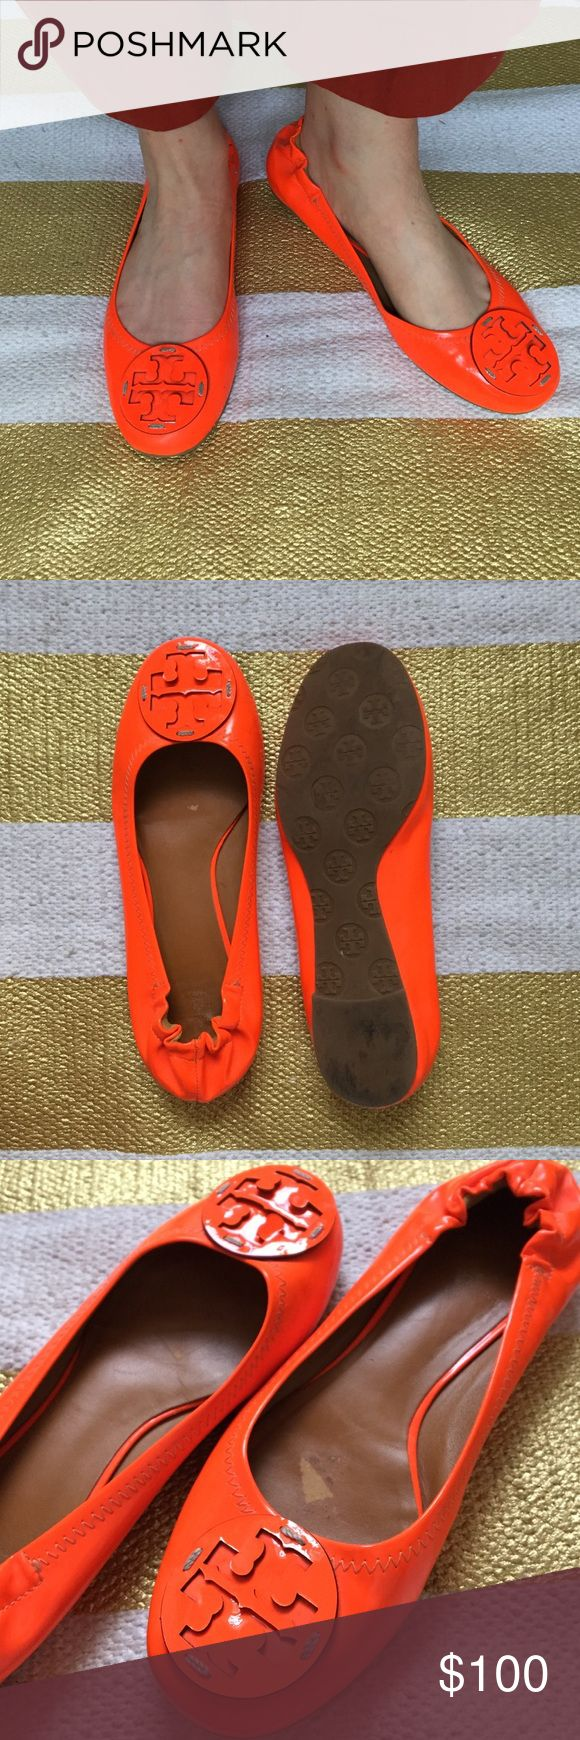 Tory Burch Patent Leather Ballet Flat Bright orange patent leather ballet flat. Very comfortable with stretchy heel to prevent blisters. A little wear on the inside of soles due to sticky inserts. Zigzag stitch detailing with Tory Burch emblem. Tory Burch Shoes Flats & Loafers